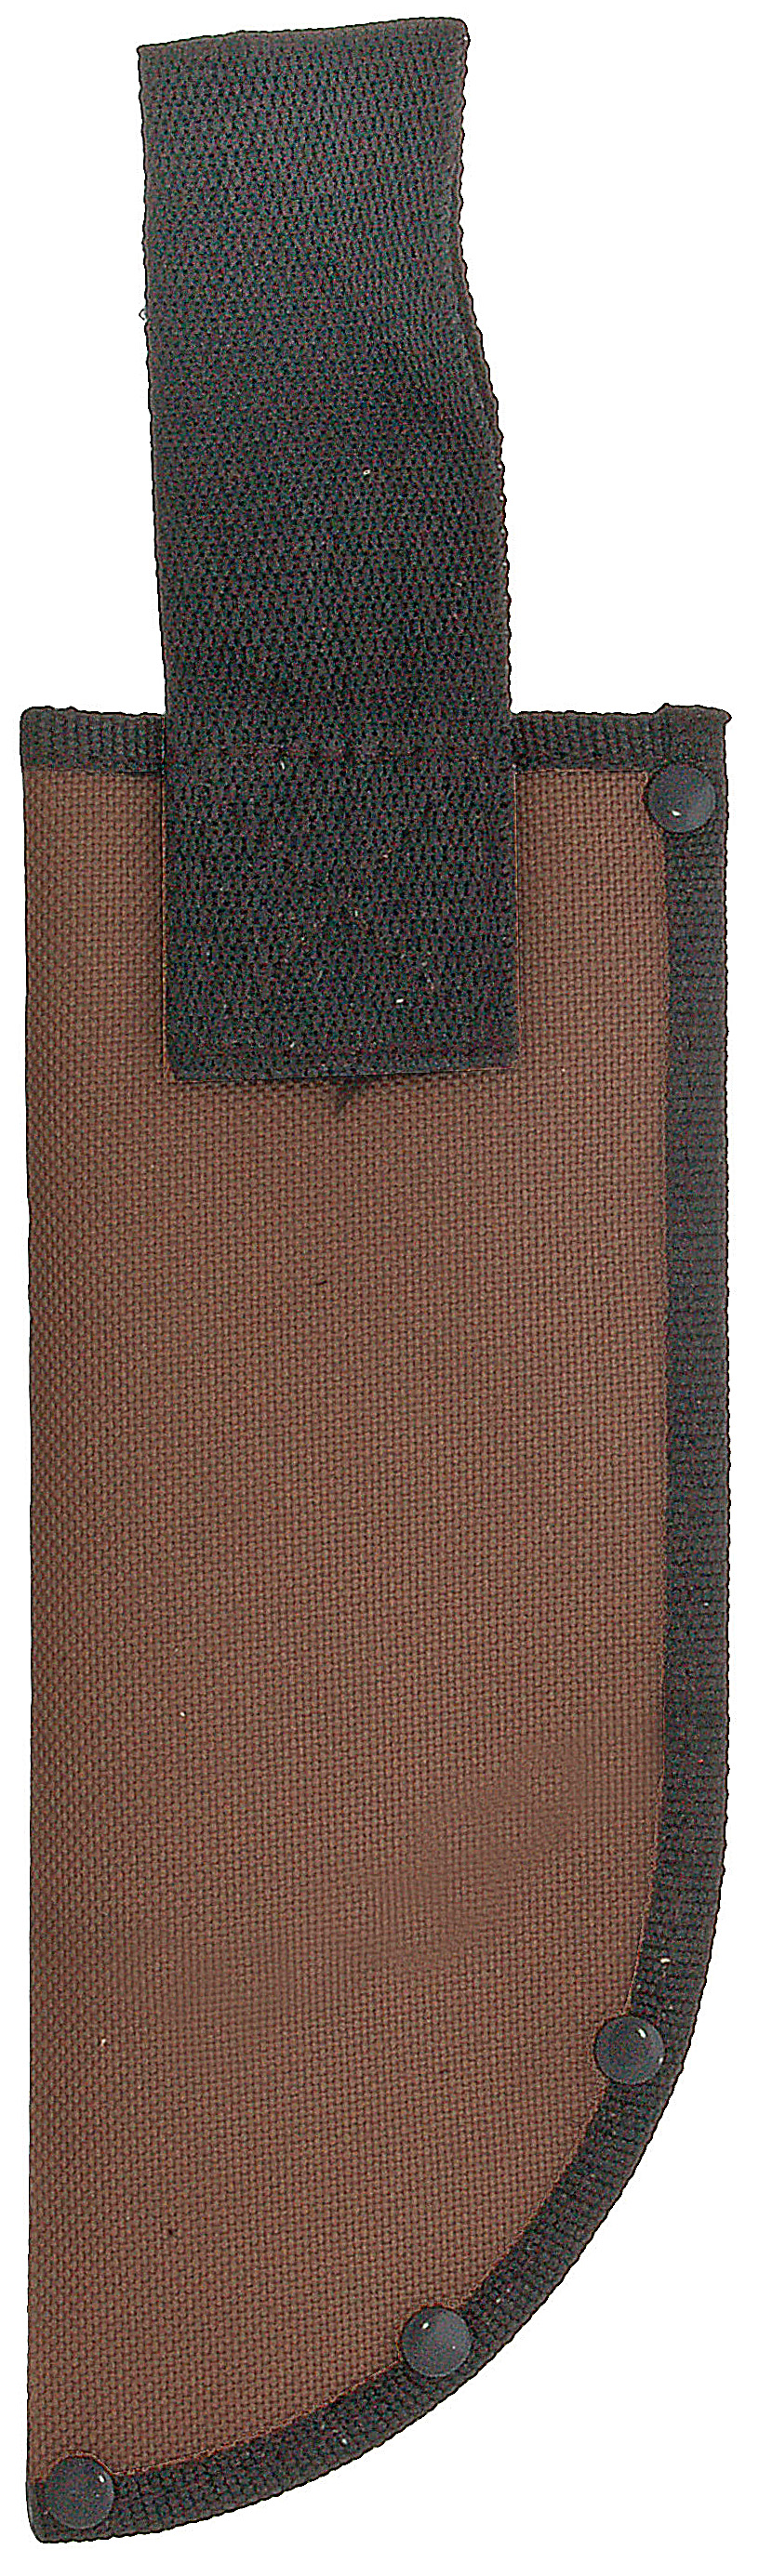 "Zenport Sheath Gaines, couteau. Canvas. Dit L 7.75"" x W 3""."